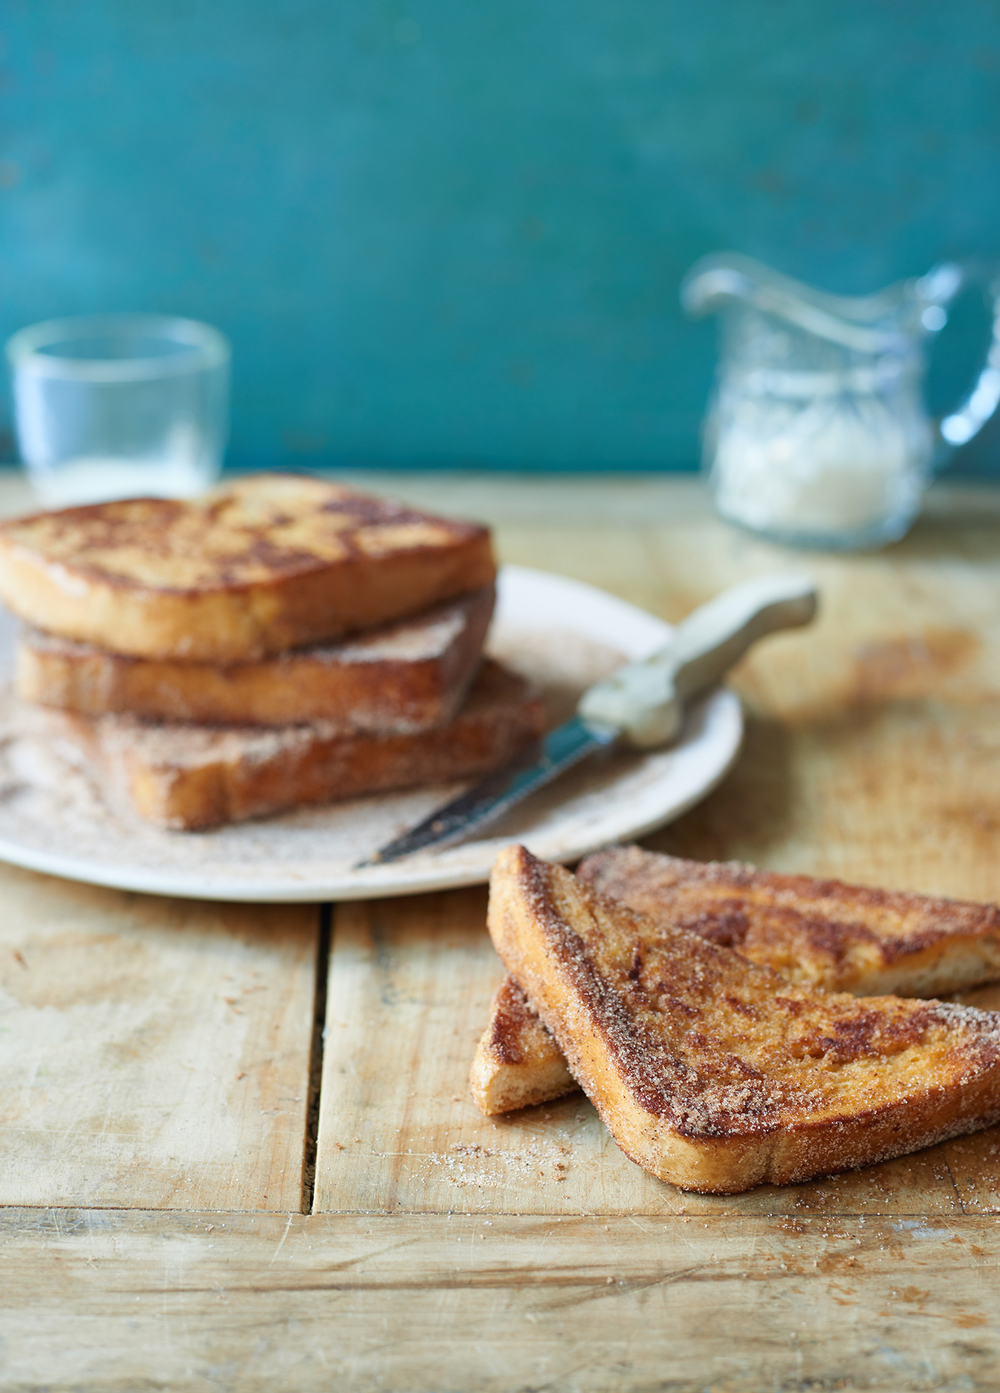 cinnamon french toast on a wooden surface